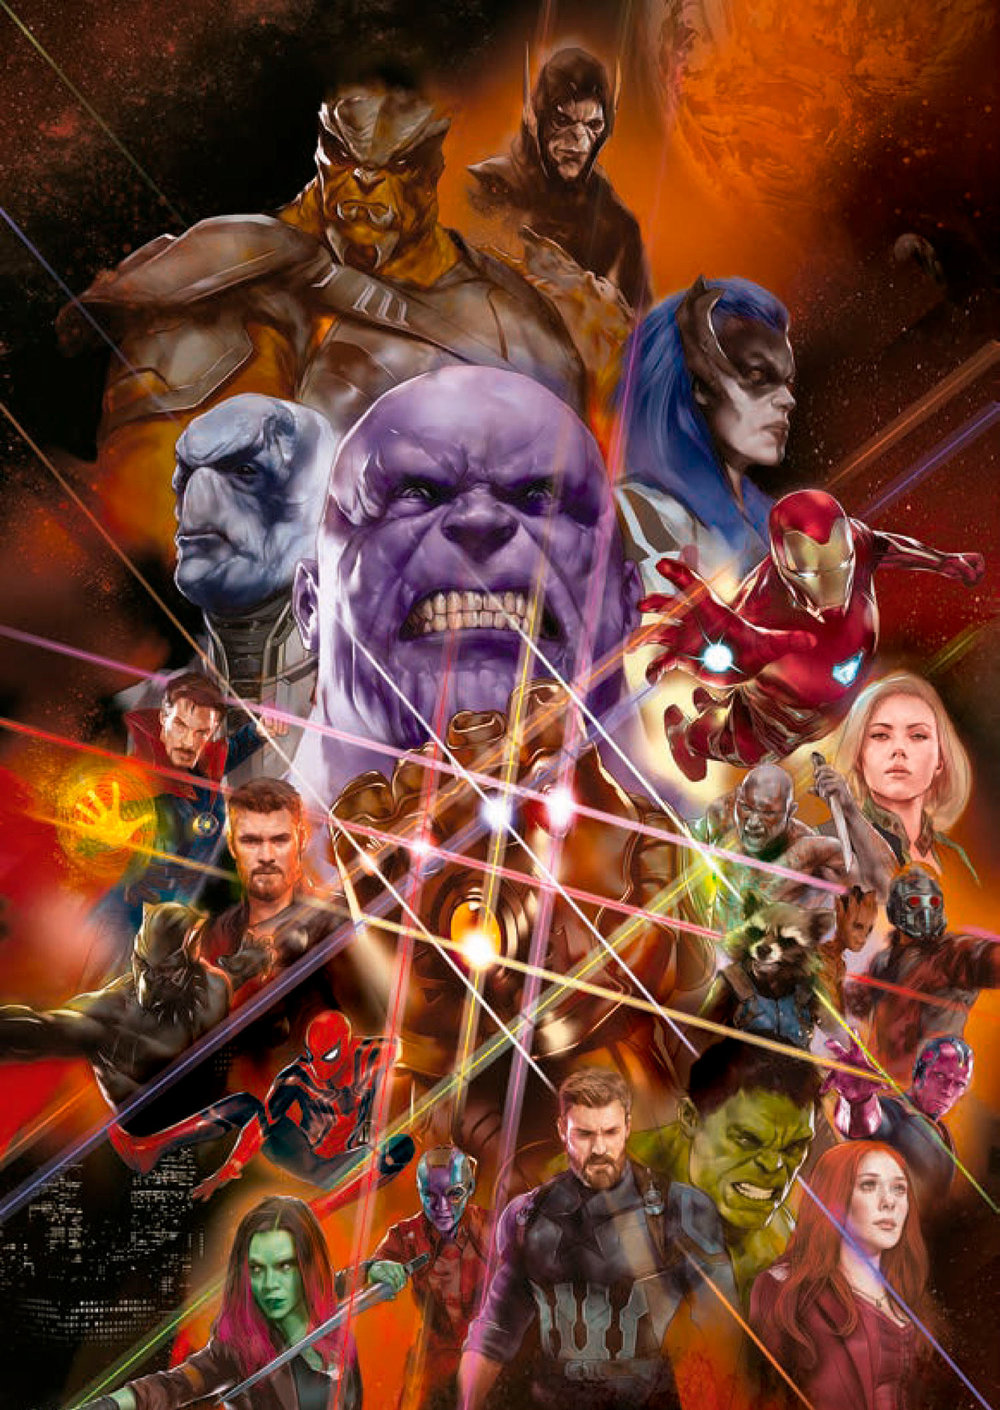 New AVENGERS: INFINITY WAR Promo Art Brings Together All The Heroes and Villains33